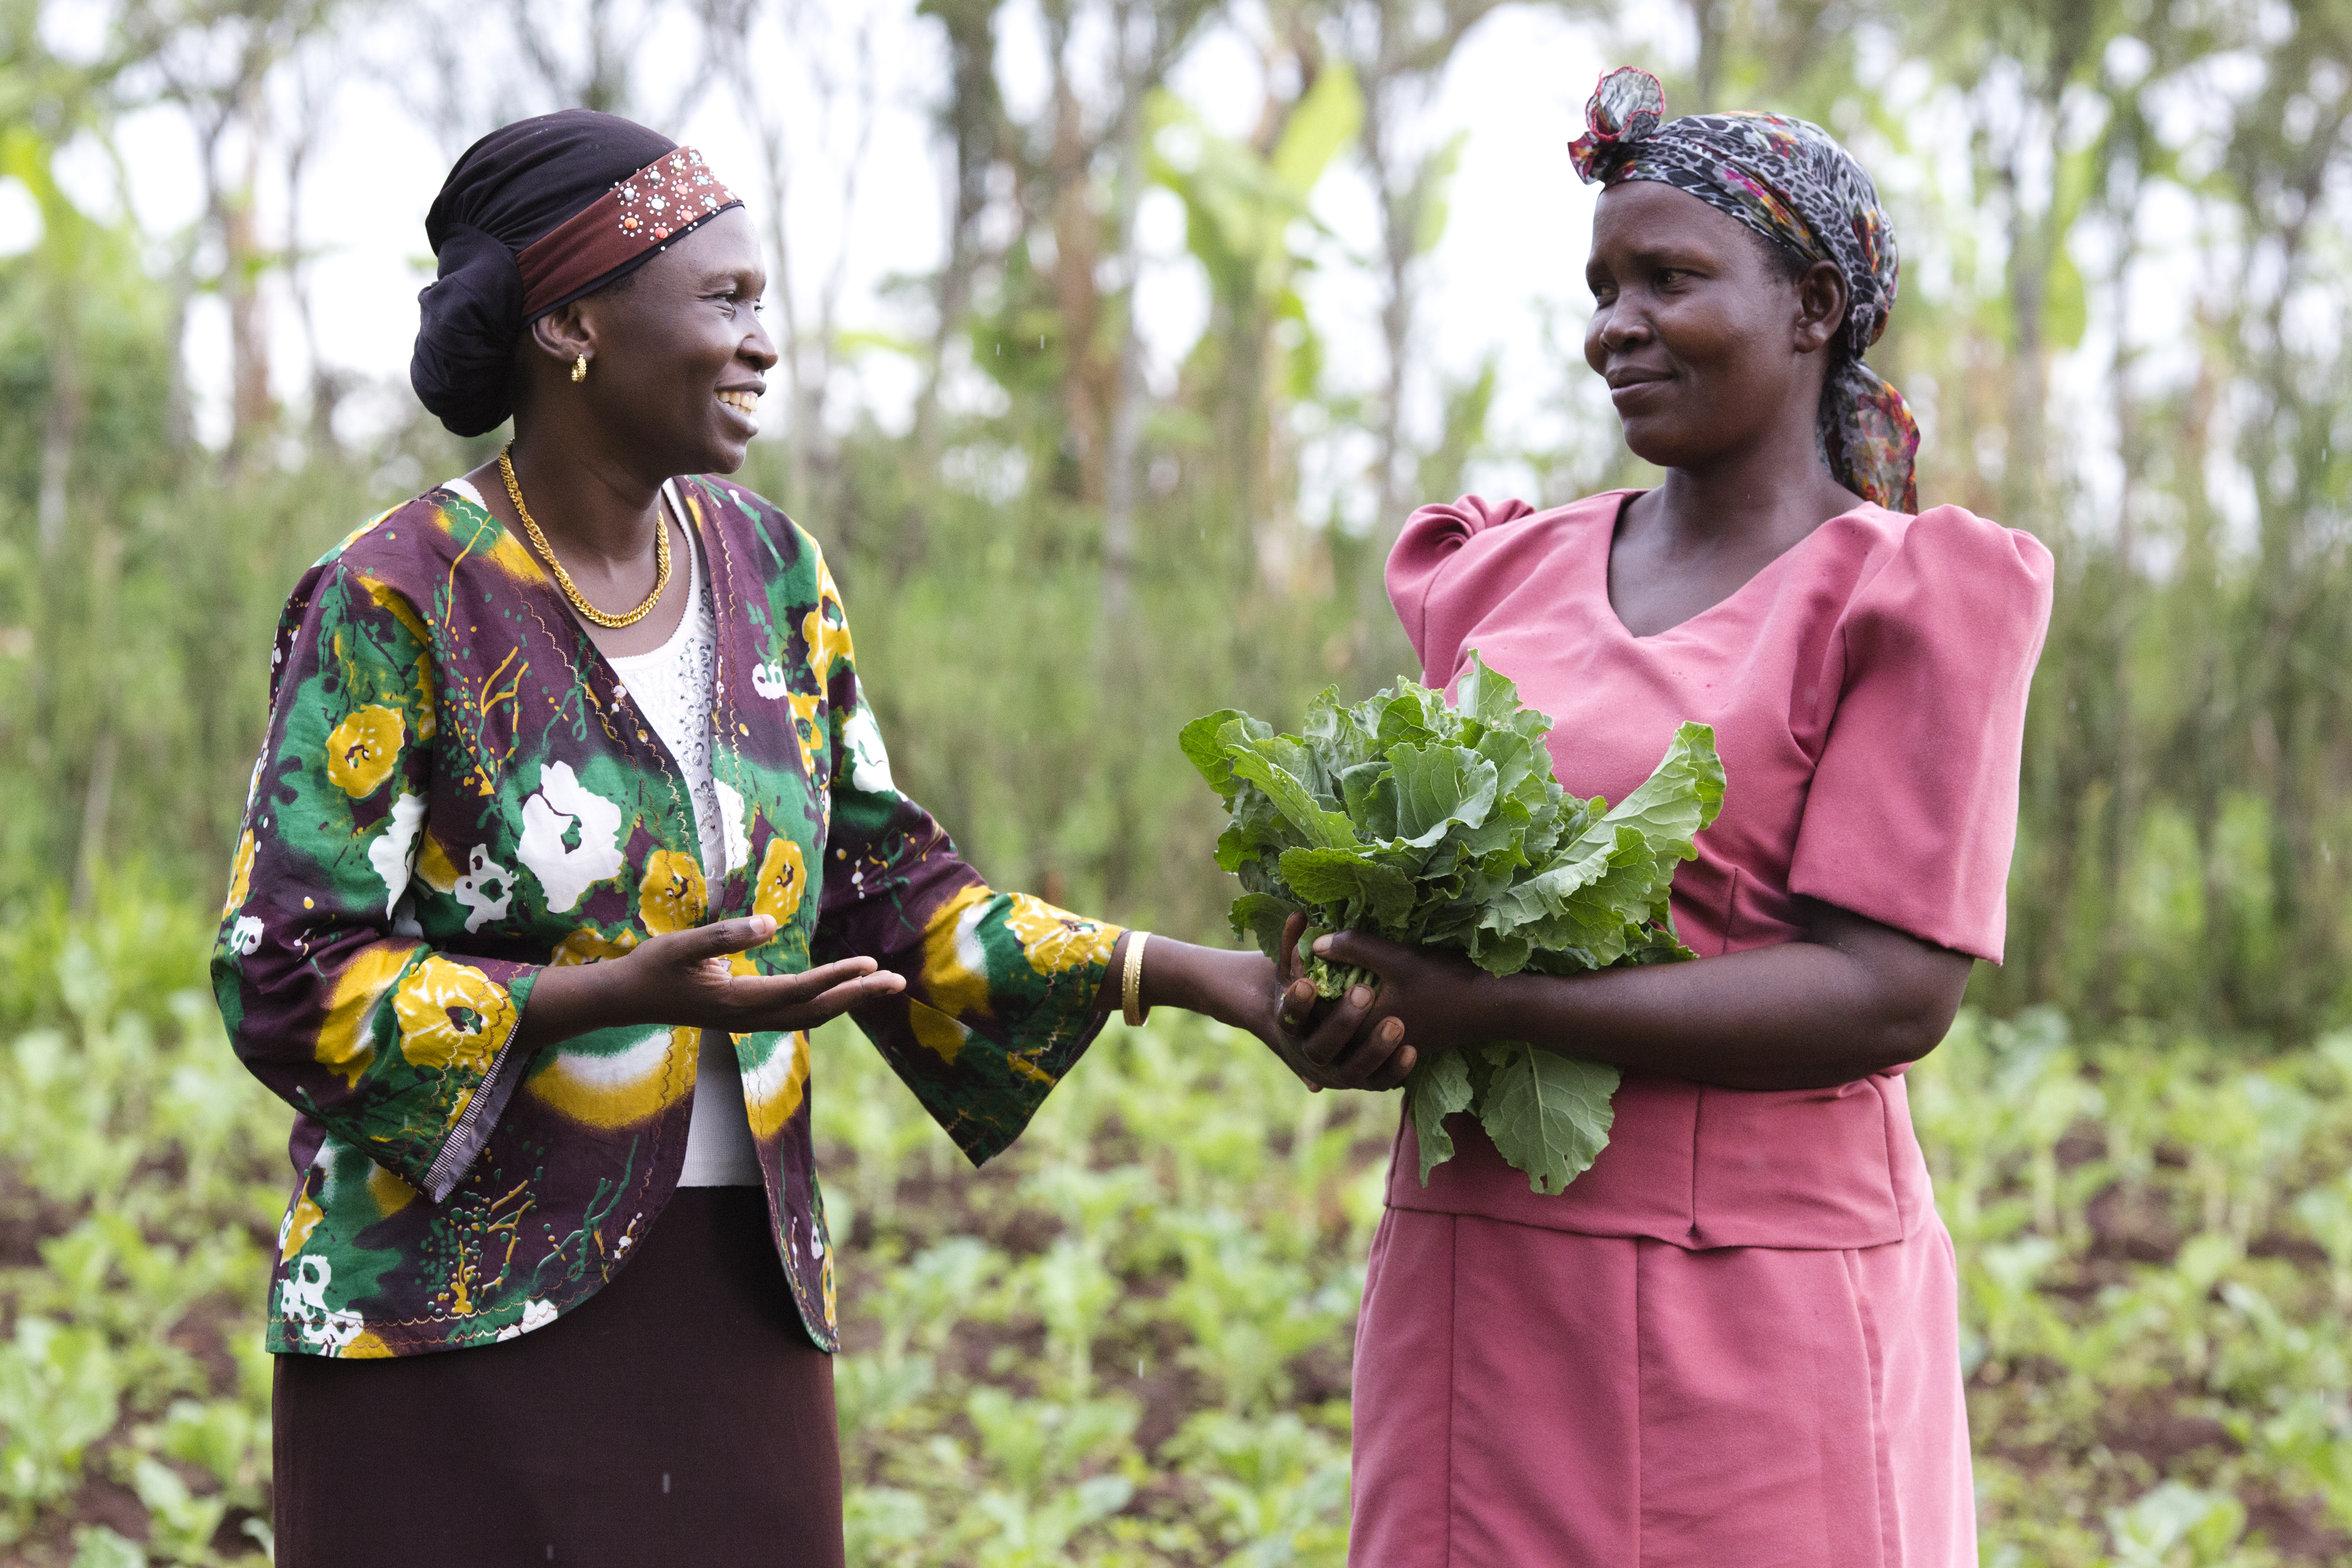 Fighting Fistula in Kenya: Two women's endeavor to end discrimination